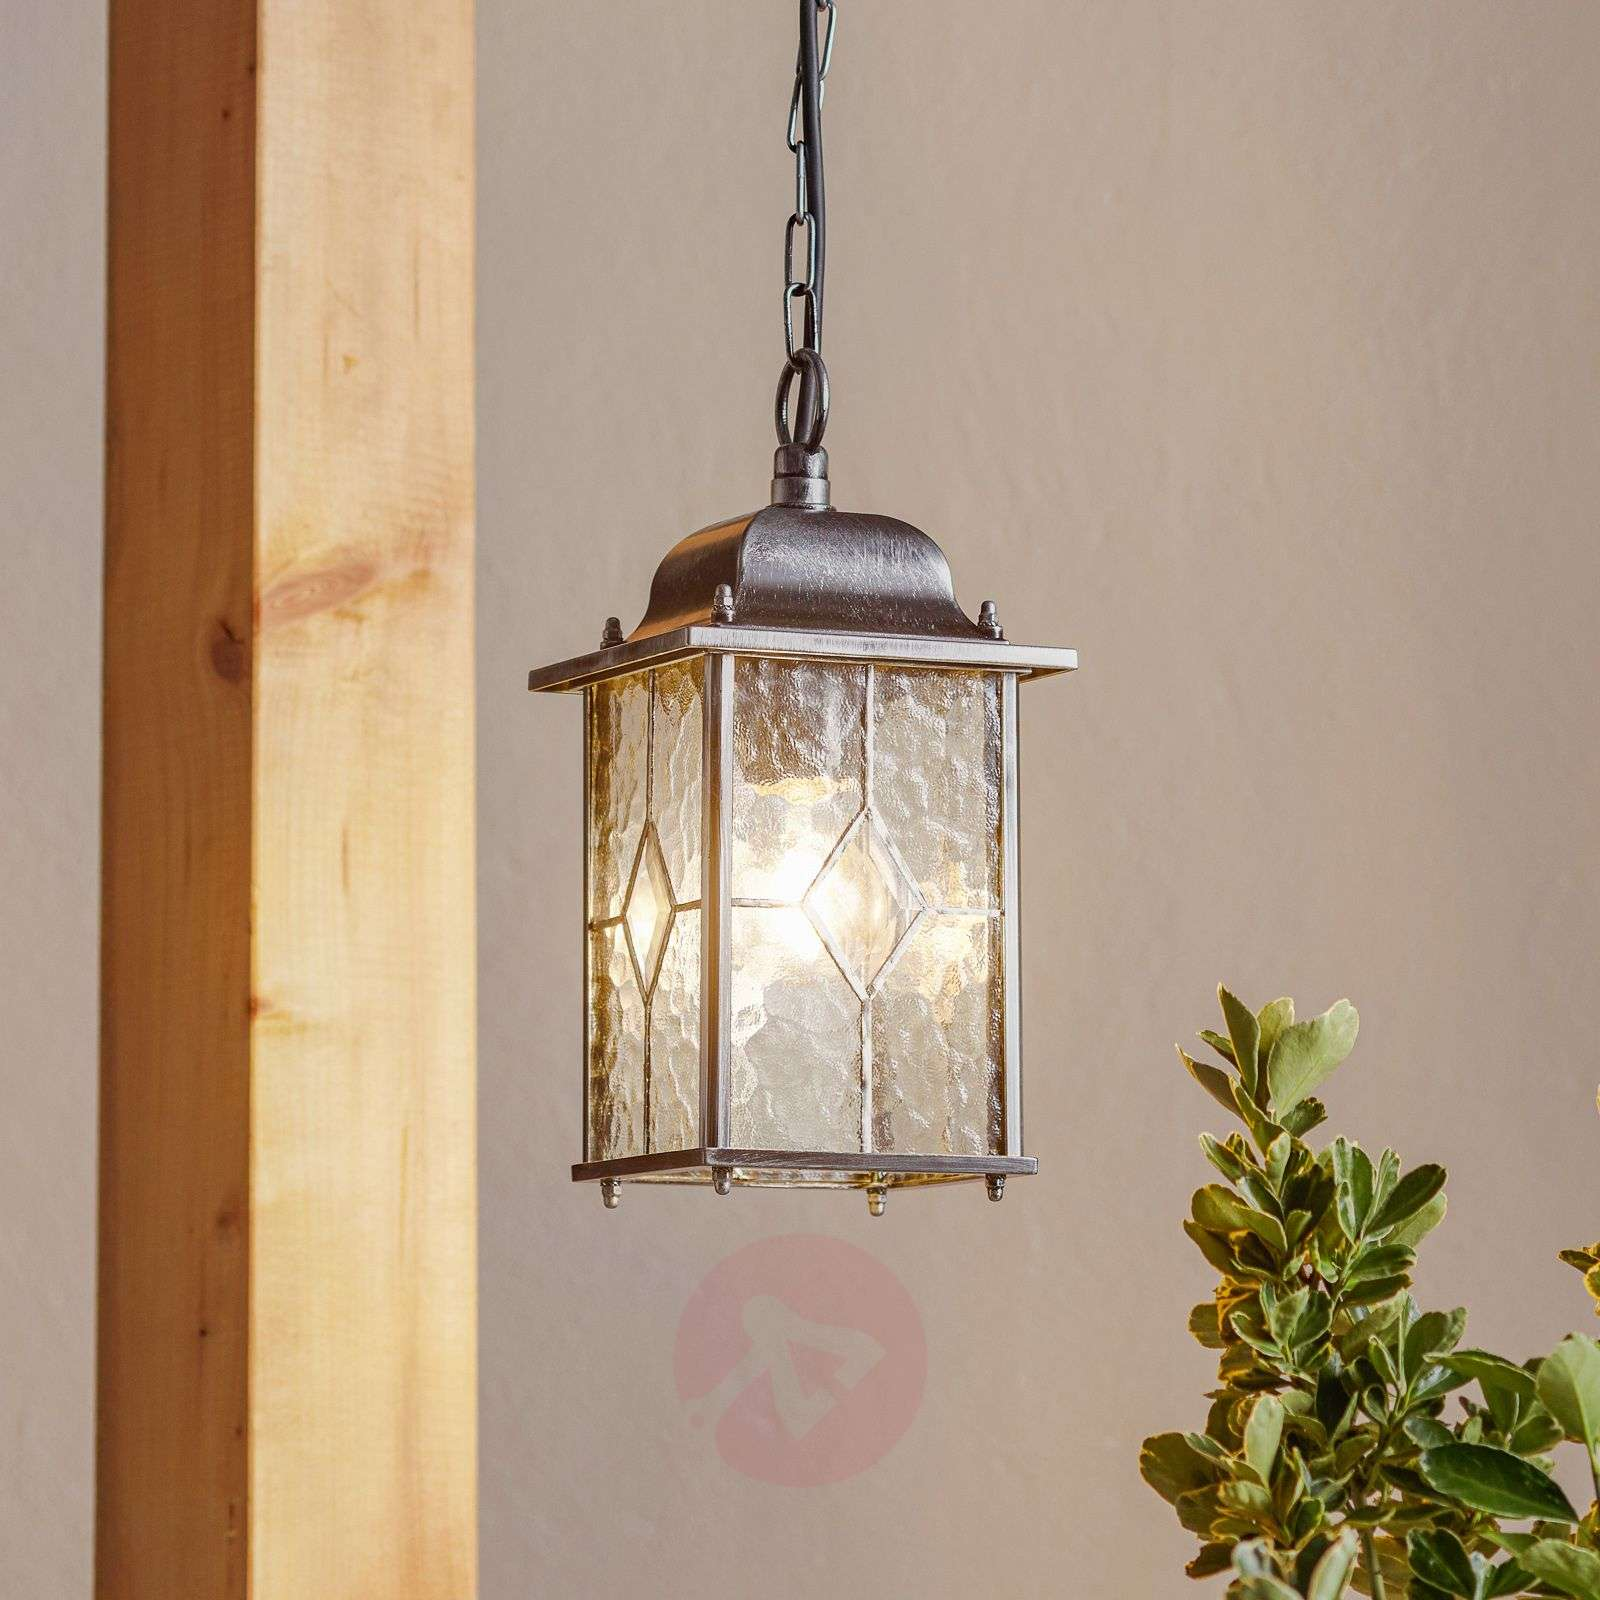 Wexford Outside Hanging Light Robust-3048211-01